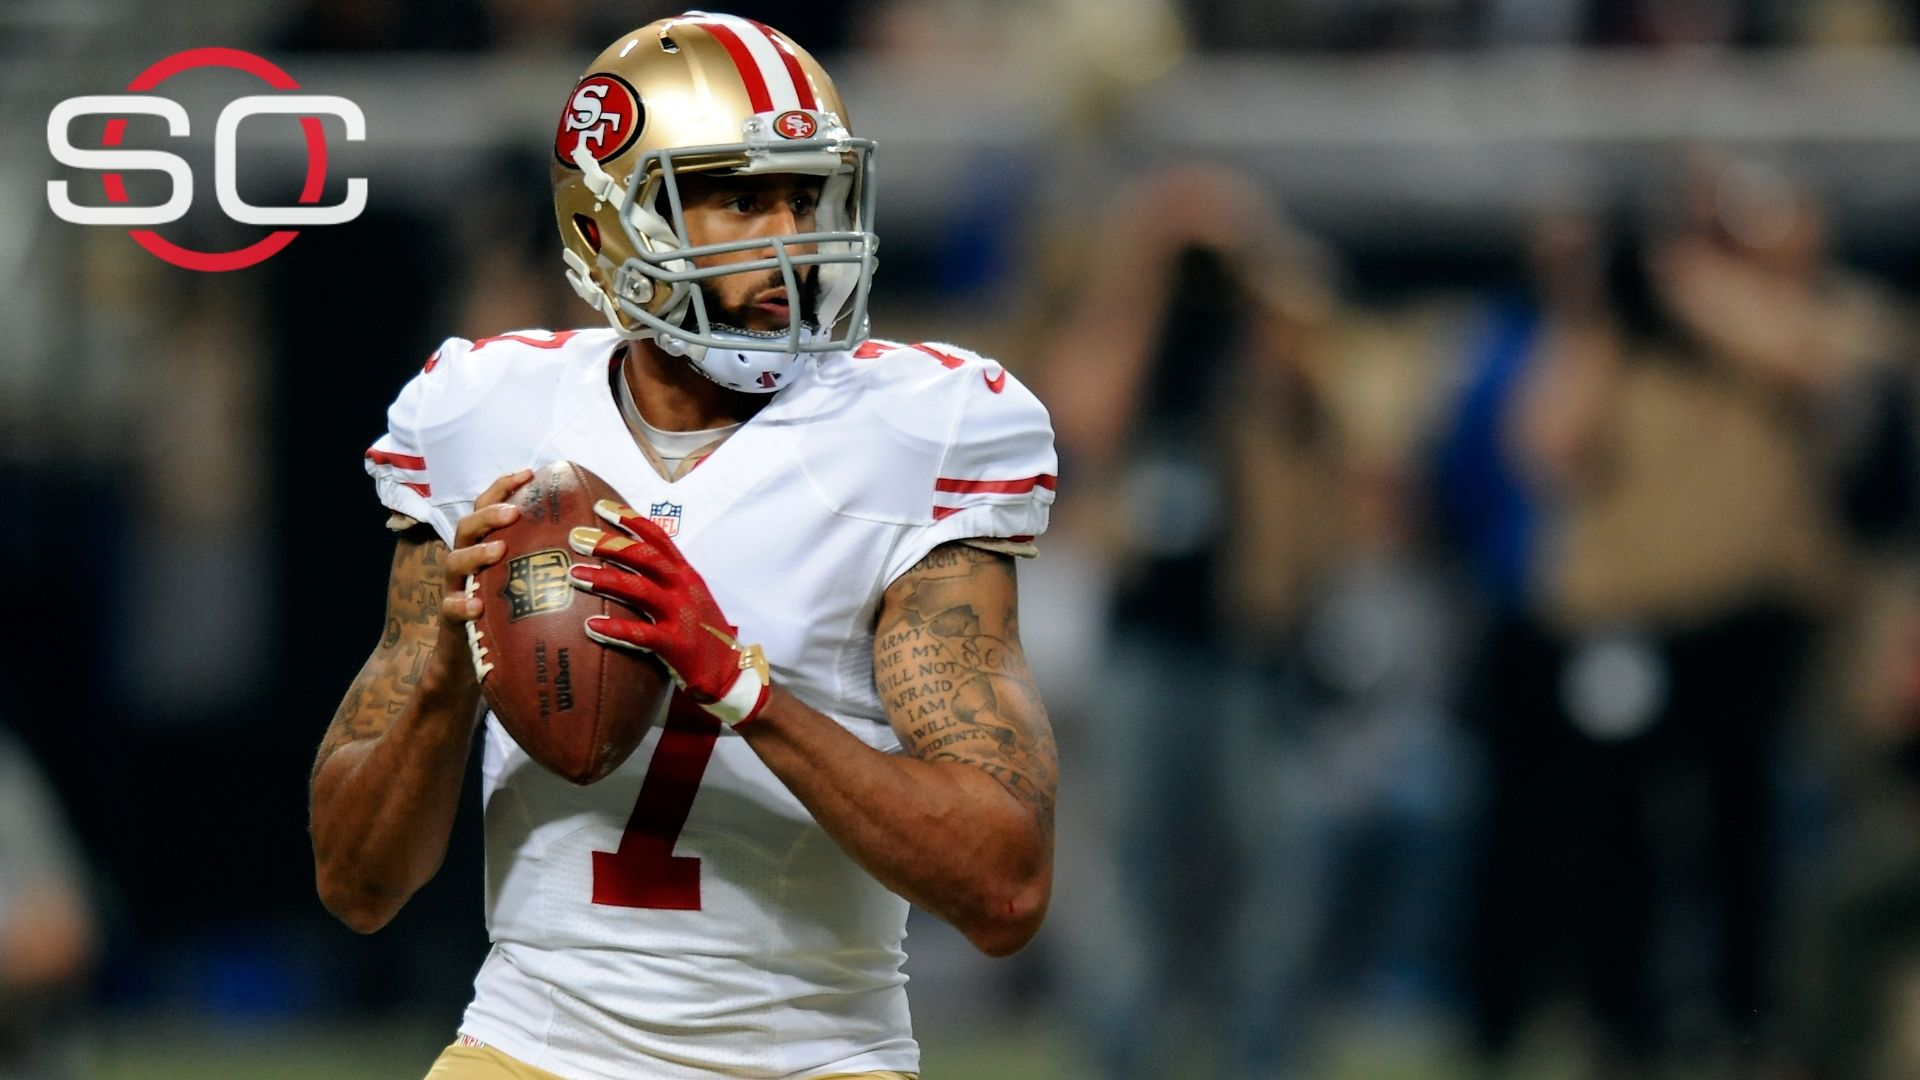 Can the Broncos get a new deal done with Kaepernick?